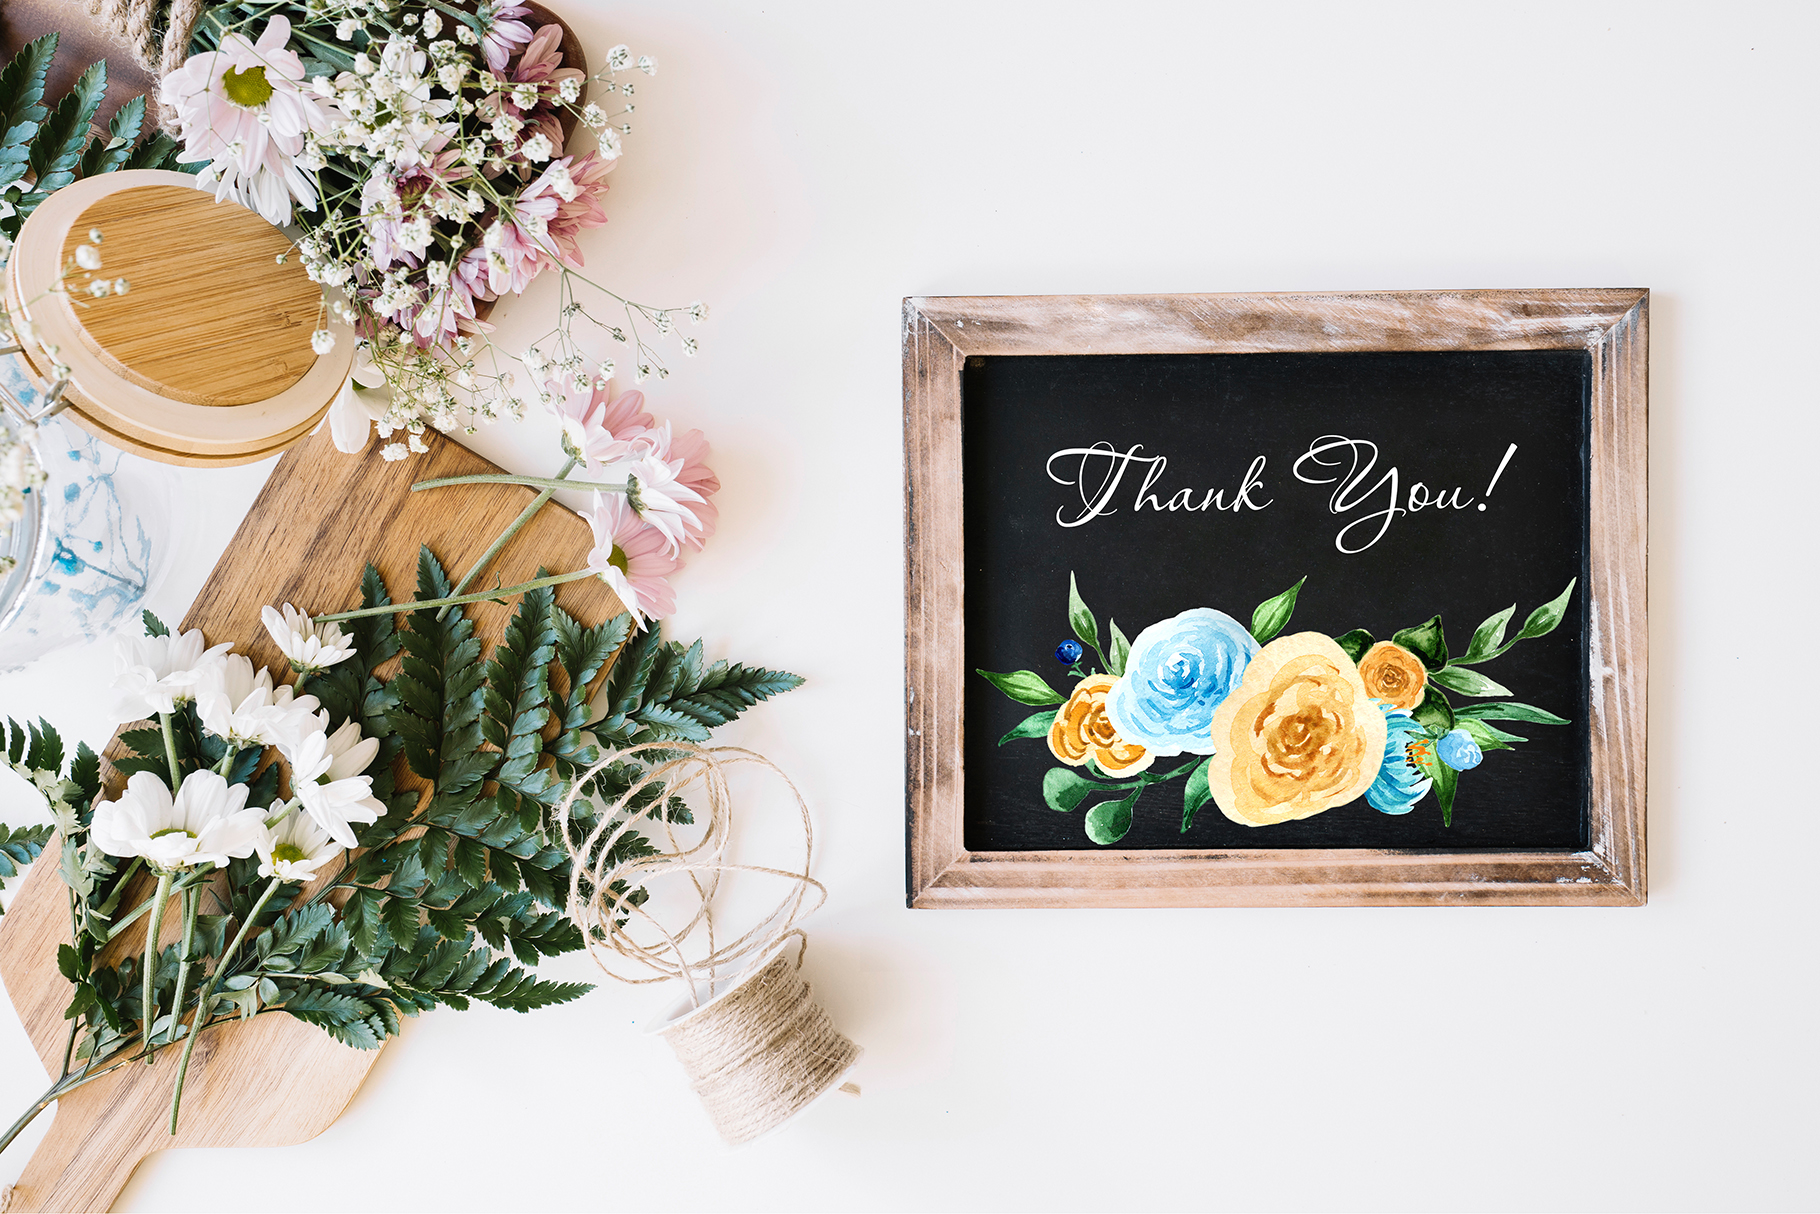 Birth of Watercolor Flower Set Graphic By tregubova.jul Image 9